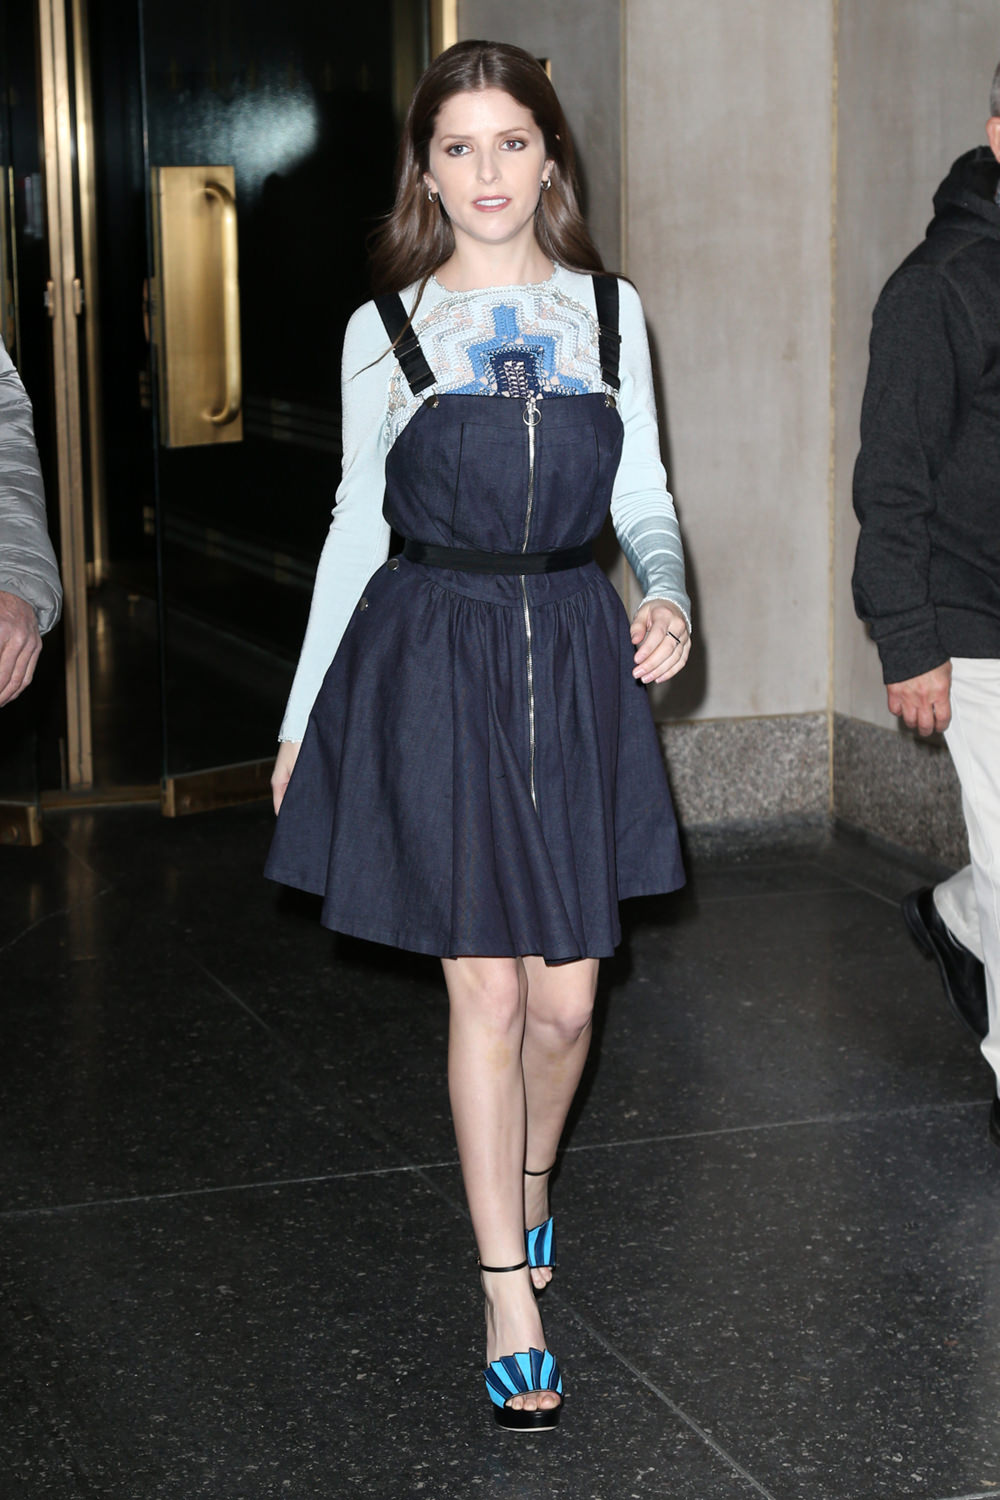 anna kendrick leaves the today show in something that causes us anna kendrick leaves the today show in something that causes us to question ourselves